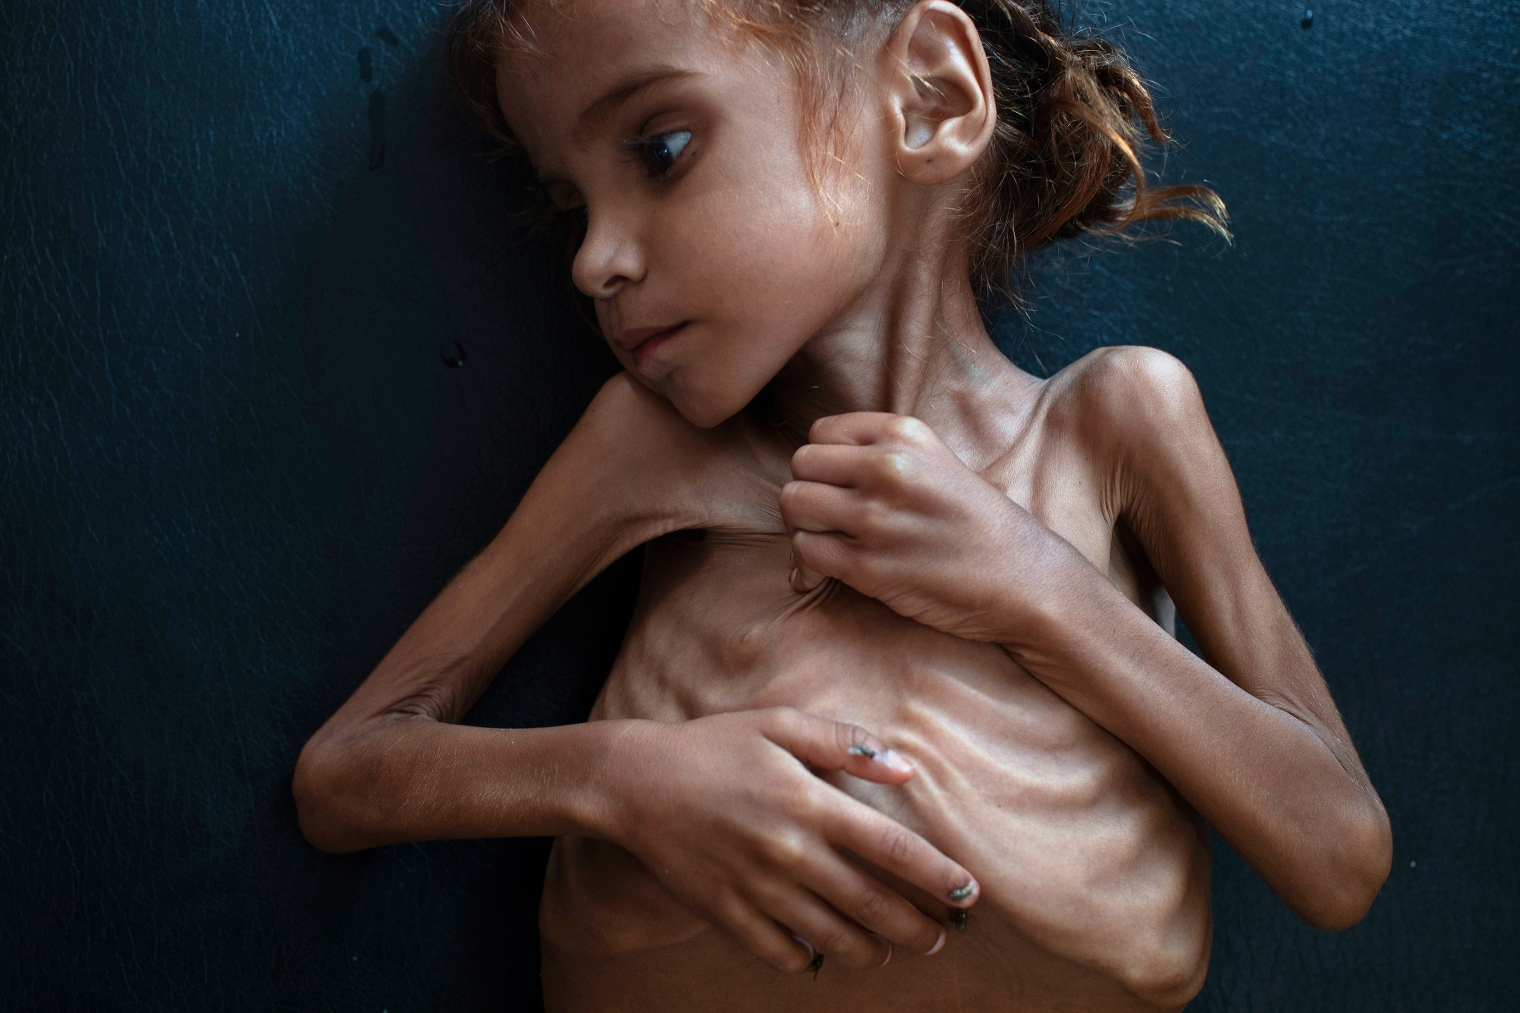 This image of 7-year-old Amal Hussain in October drew global attention to the humanitarian crisis